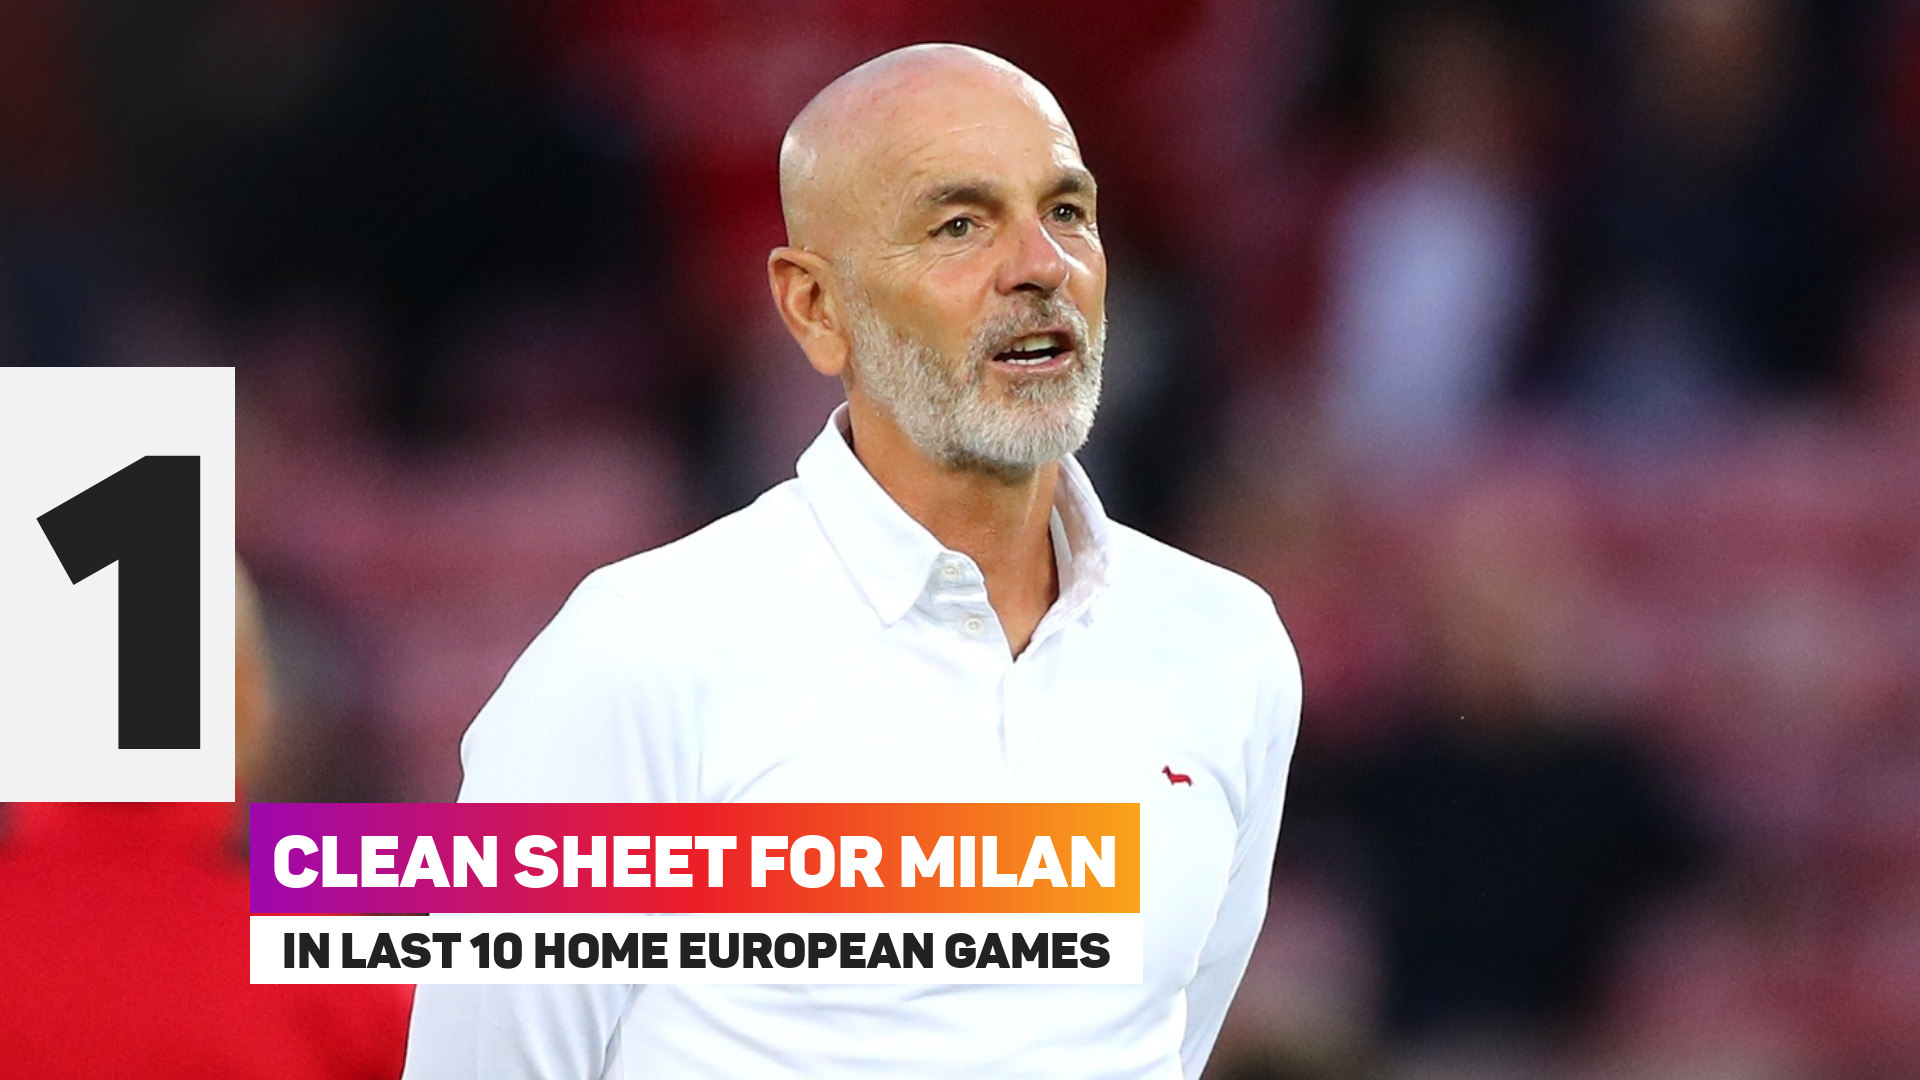 Milan have kept one clean sheet in their last 10 home European matches